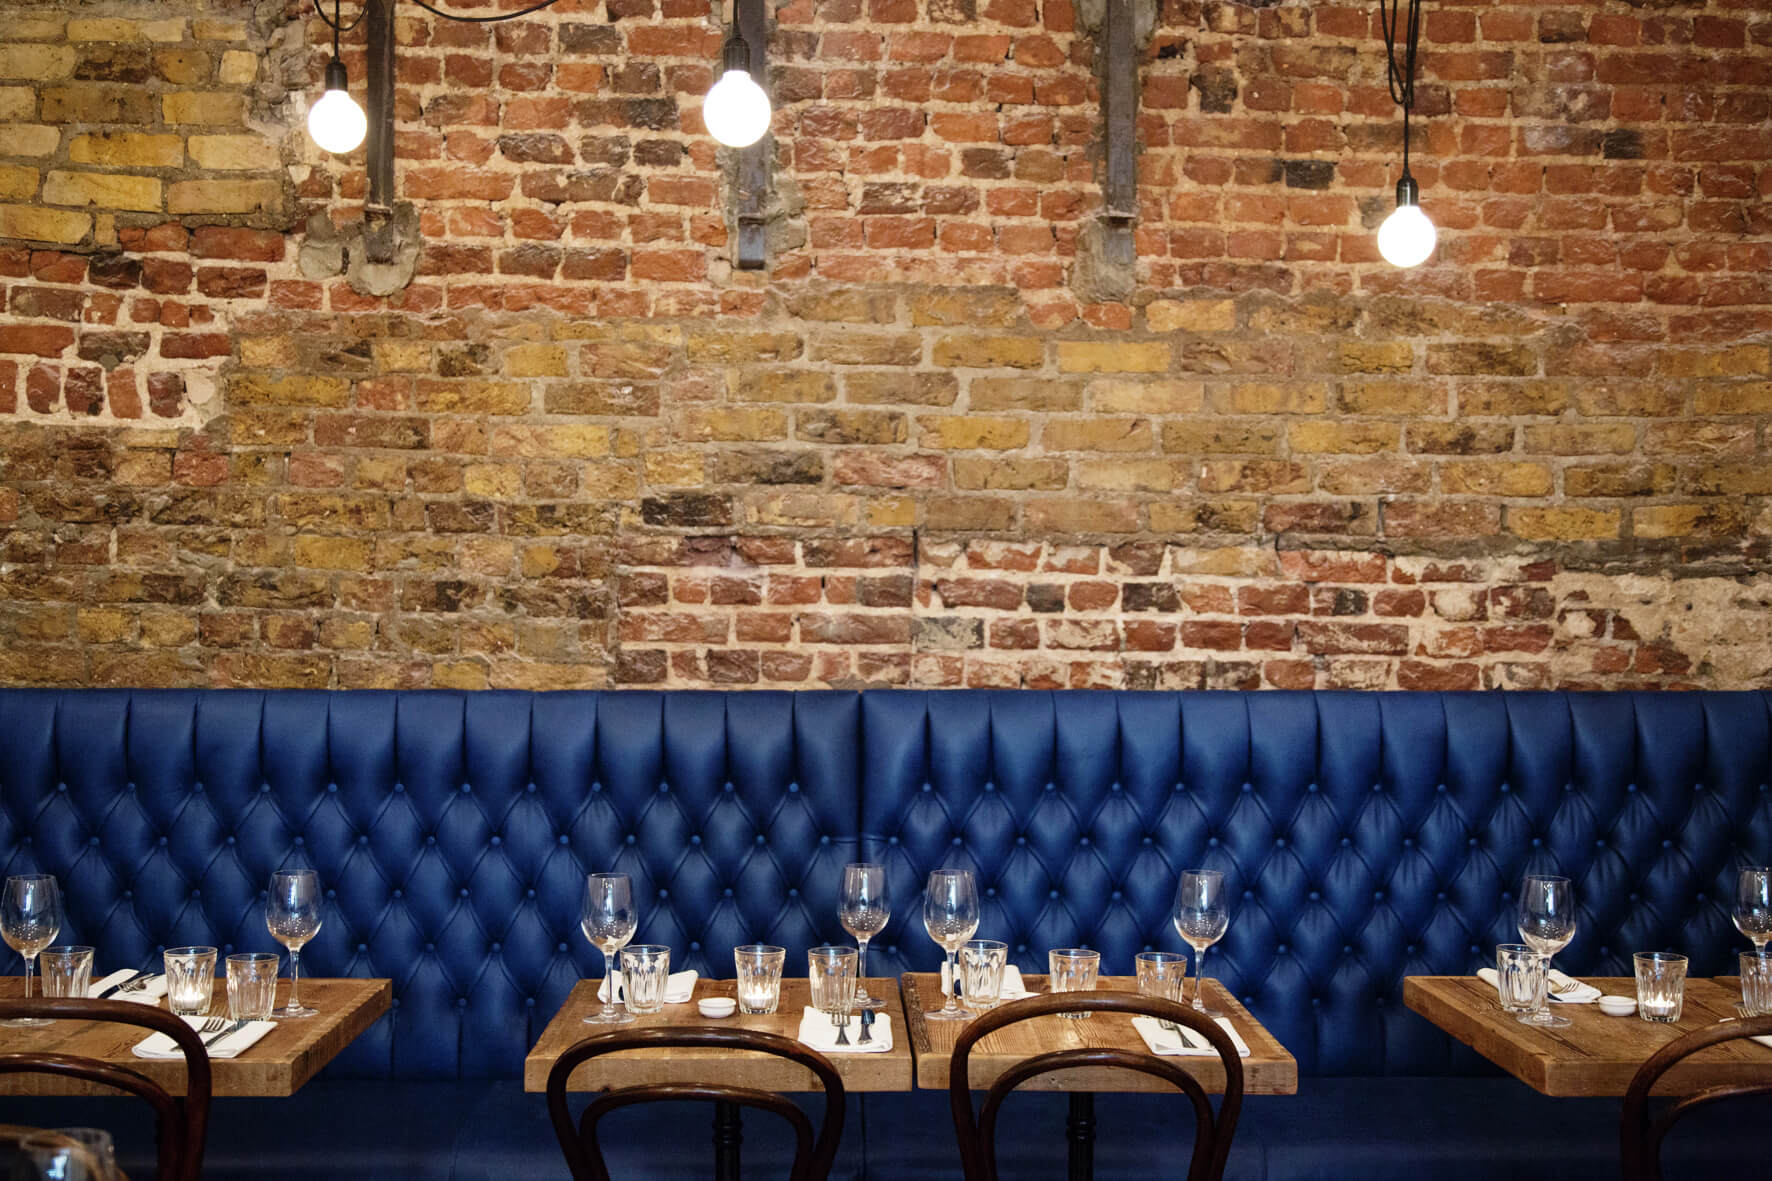 Best Restaurants in London, The New Openings Guide, london restaurants, T.E.D, new restaurants